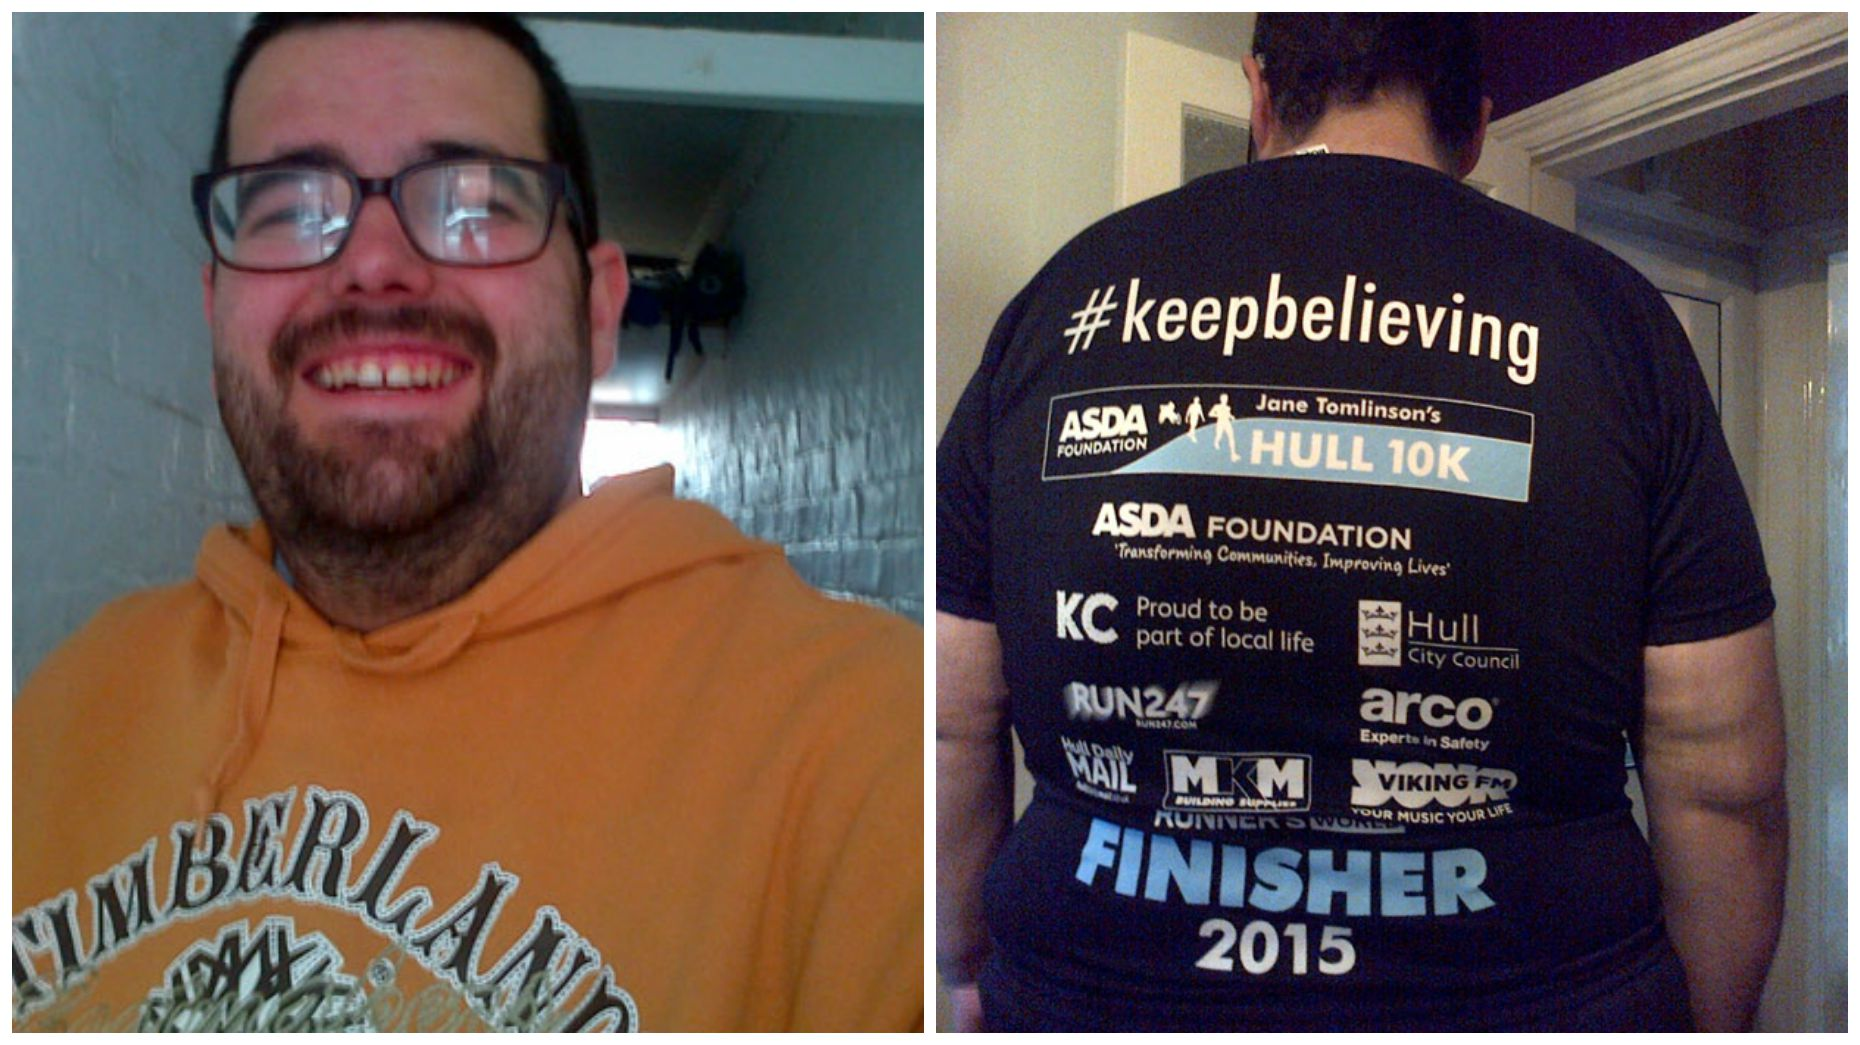 He's been raising money for charity alongside his weight loss.